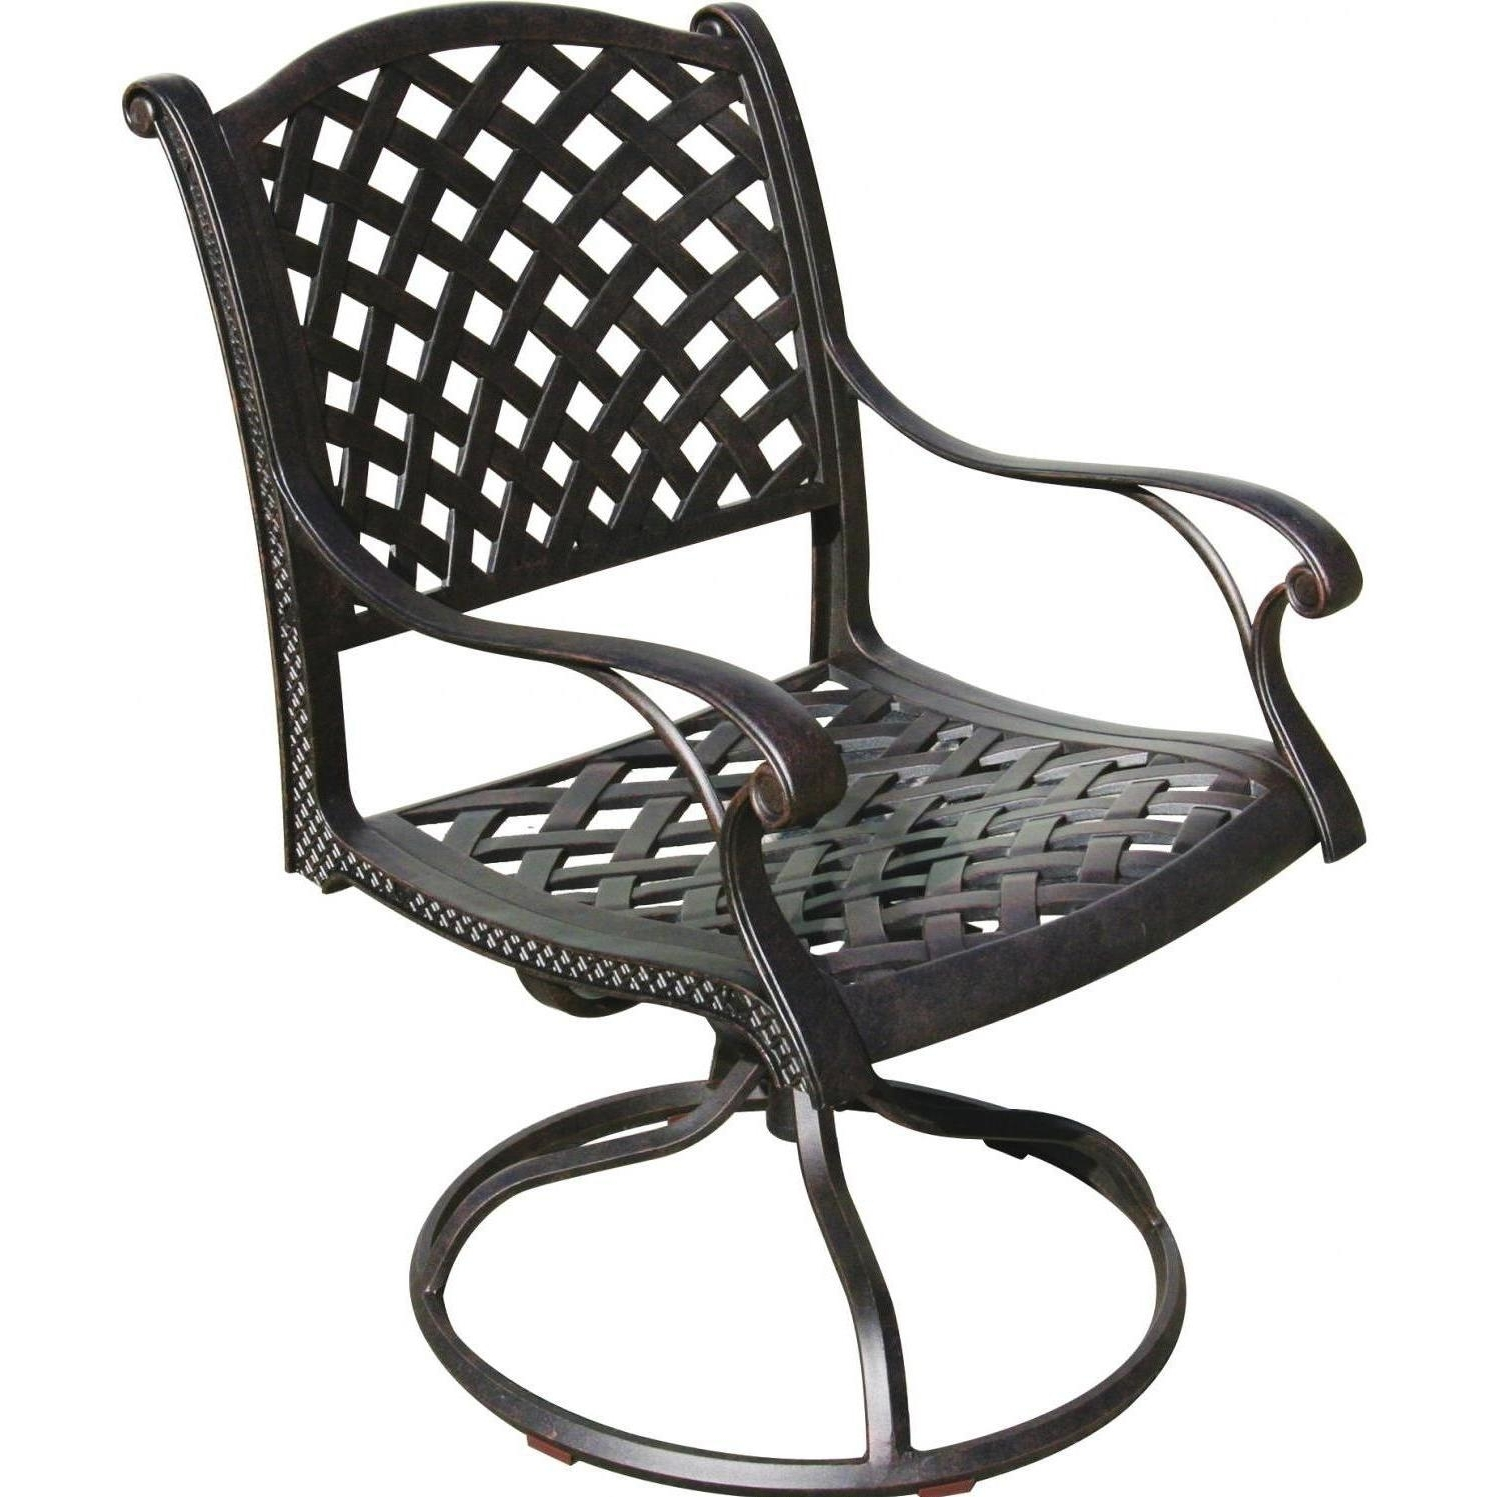 Trendy Darlee Nassau Cast Aluminum Patio Swivel Rocker Dining Chair For Patio Rocking Swivel Chairs (View 17 of 20)